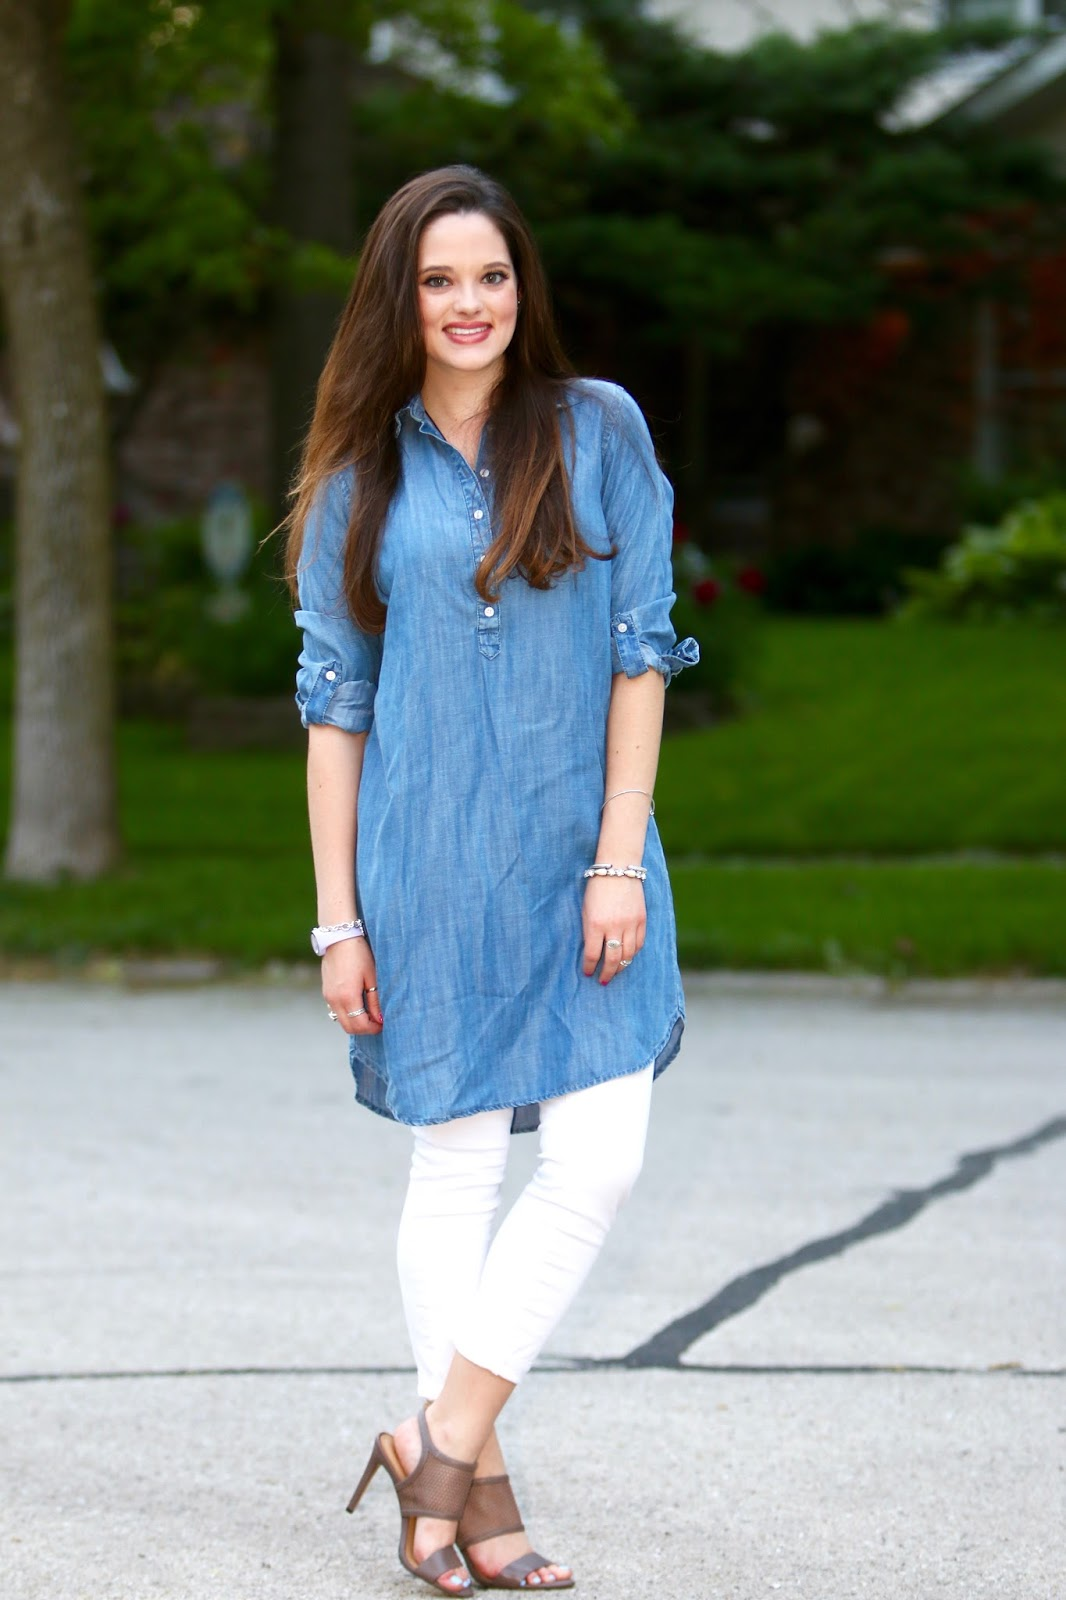 fashion blogger shirtdress